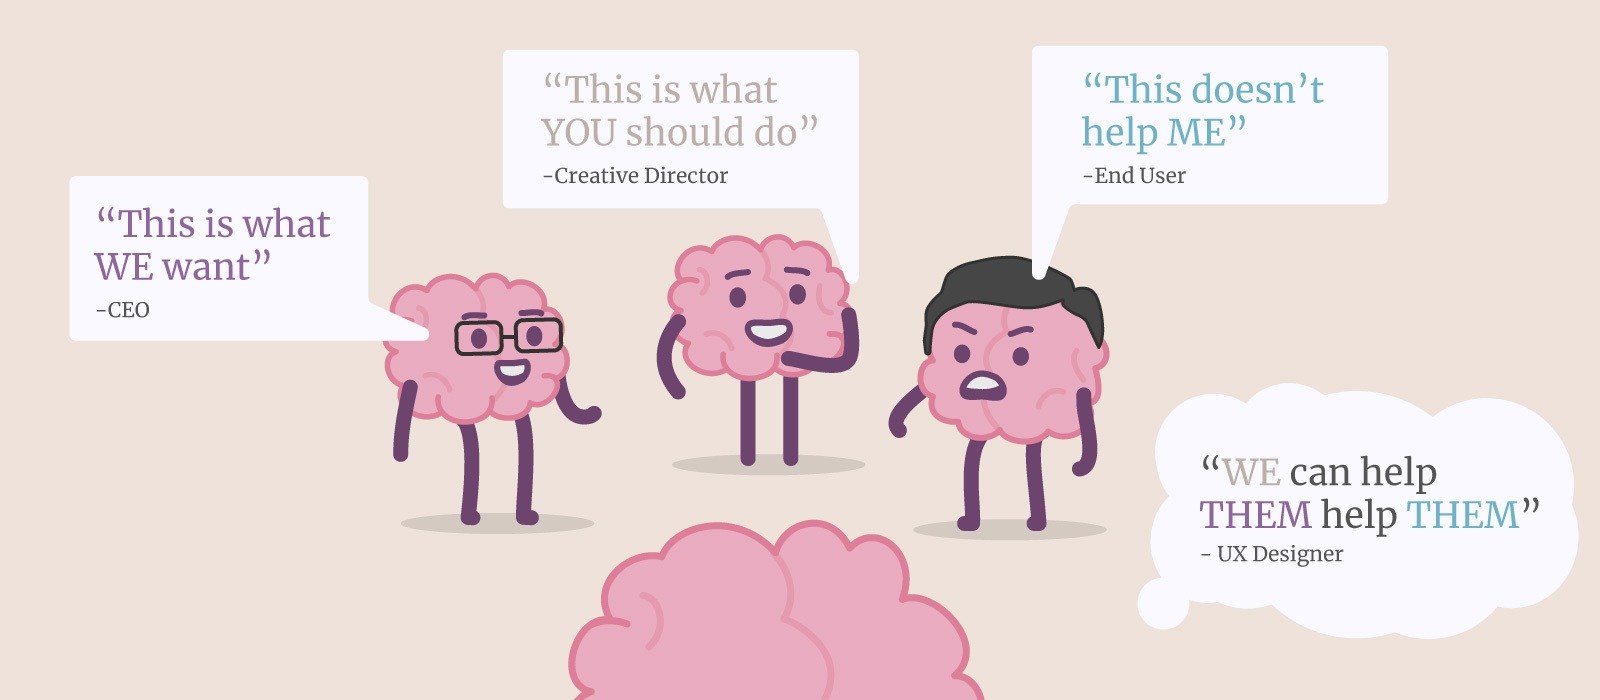 A group of illustrated brains representing the roles of CEO, creative director and client discussing how they think the user experience should flow.